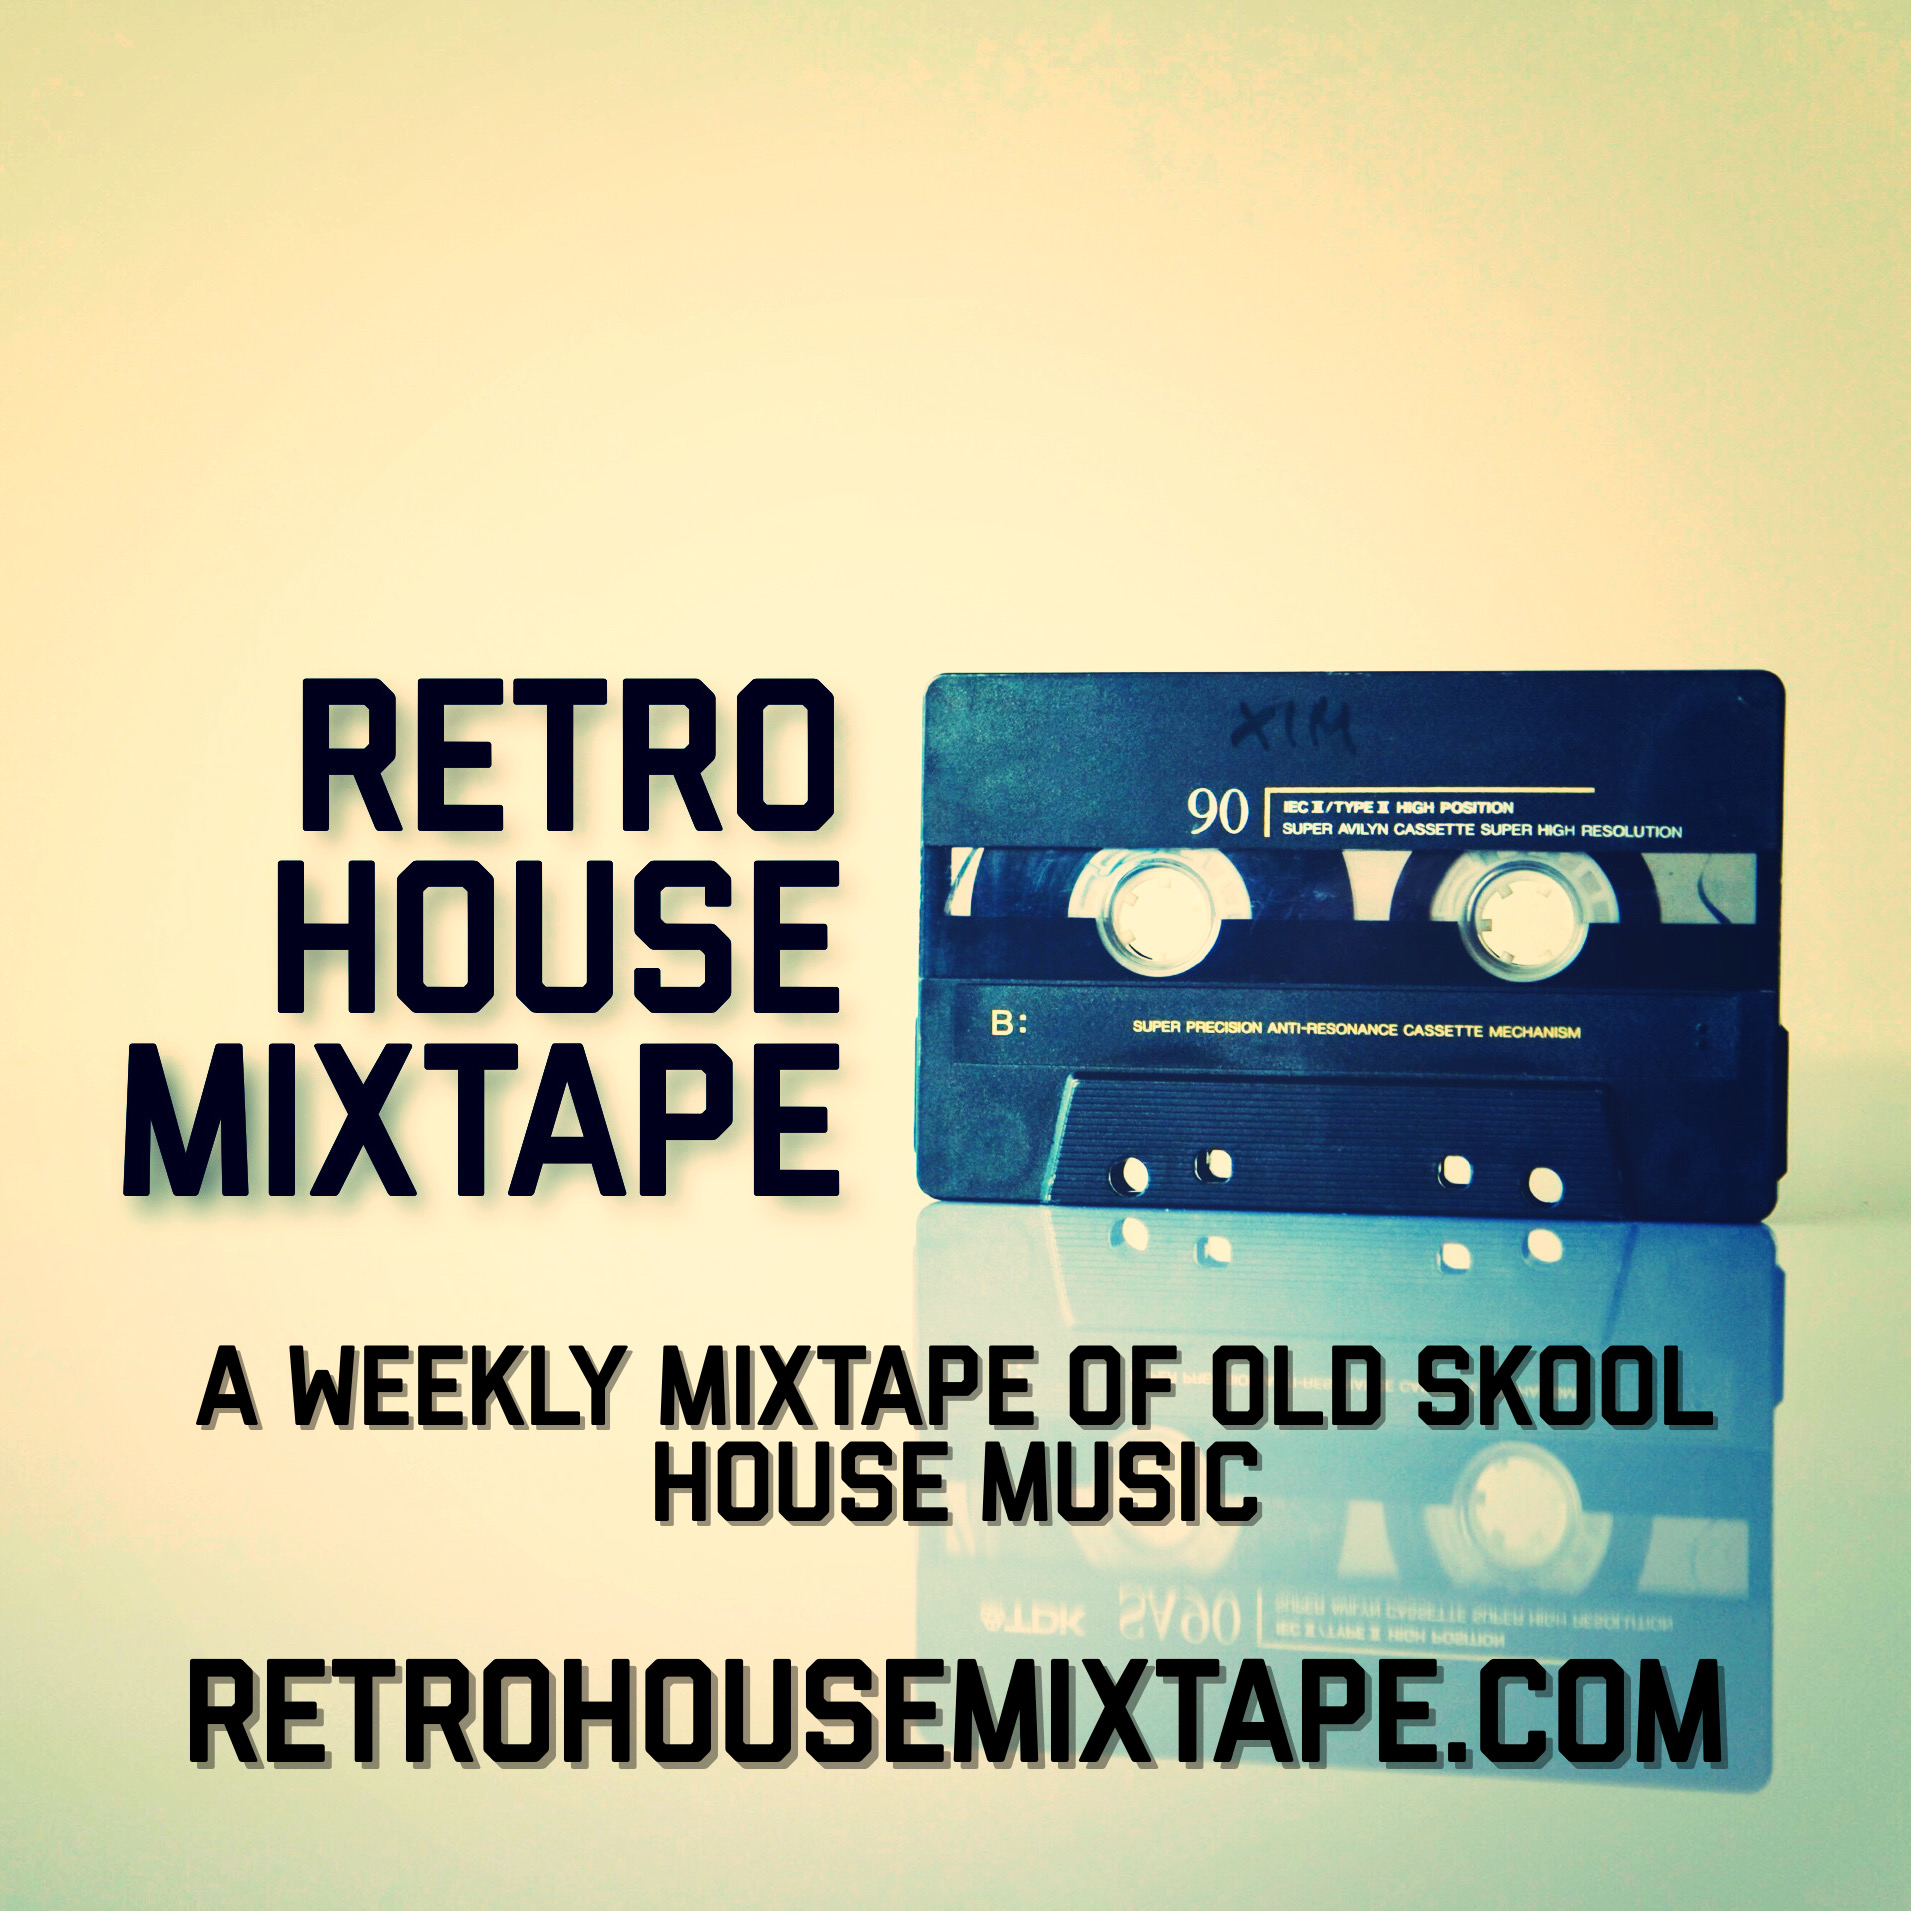 Retro House Mixtape - Old Skool House